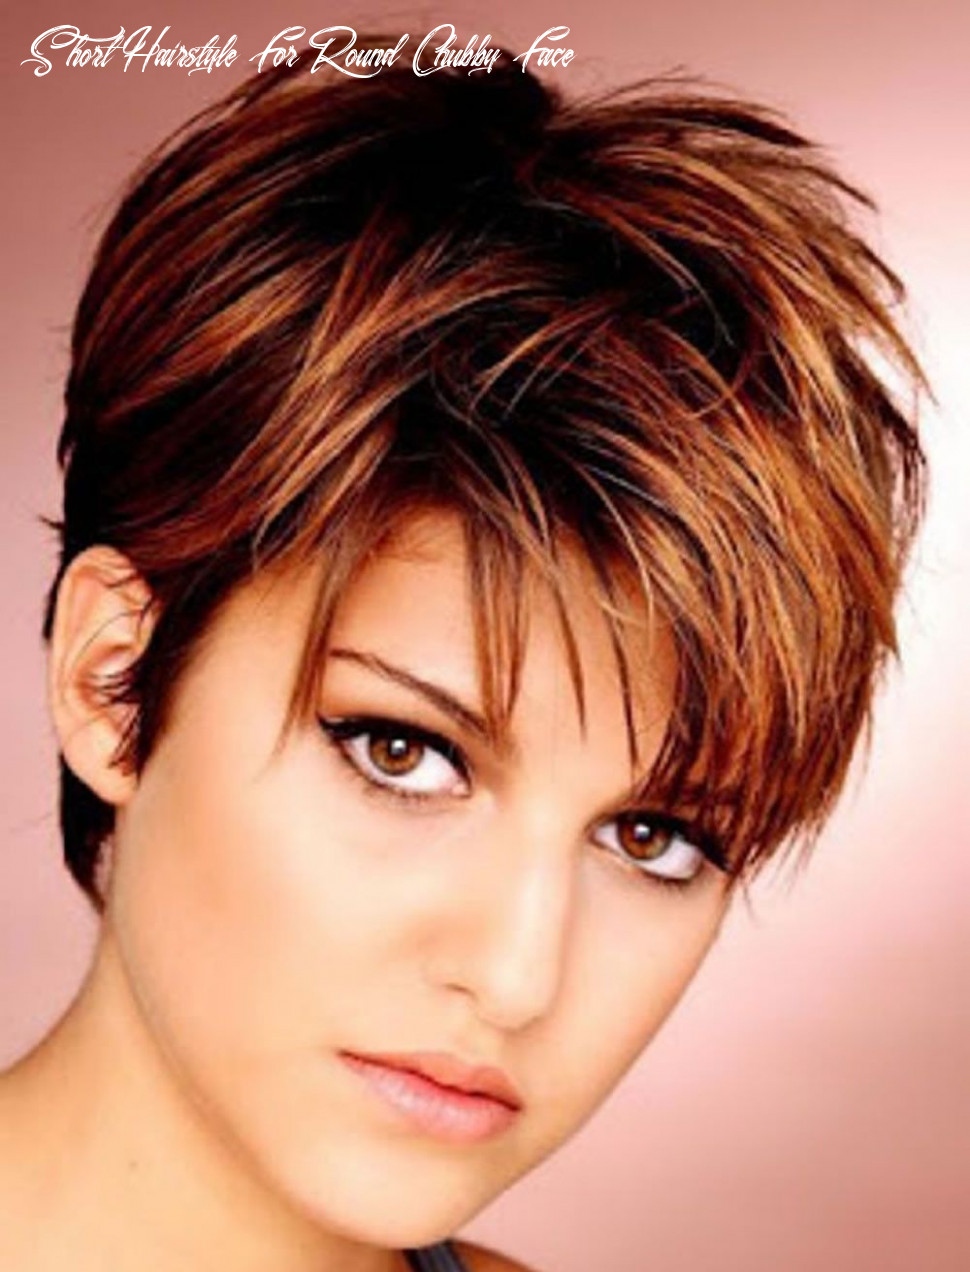 Pin on short hair ideas short hairstyle for round chubby face